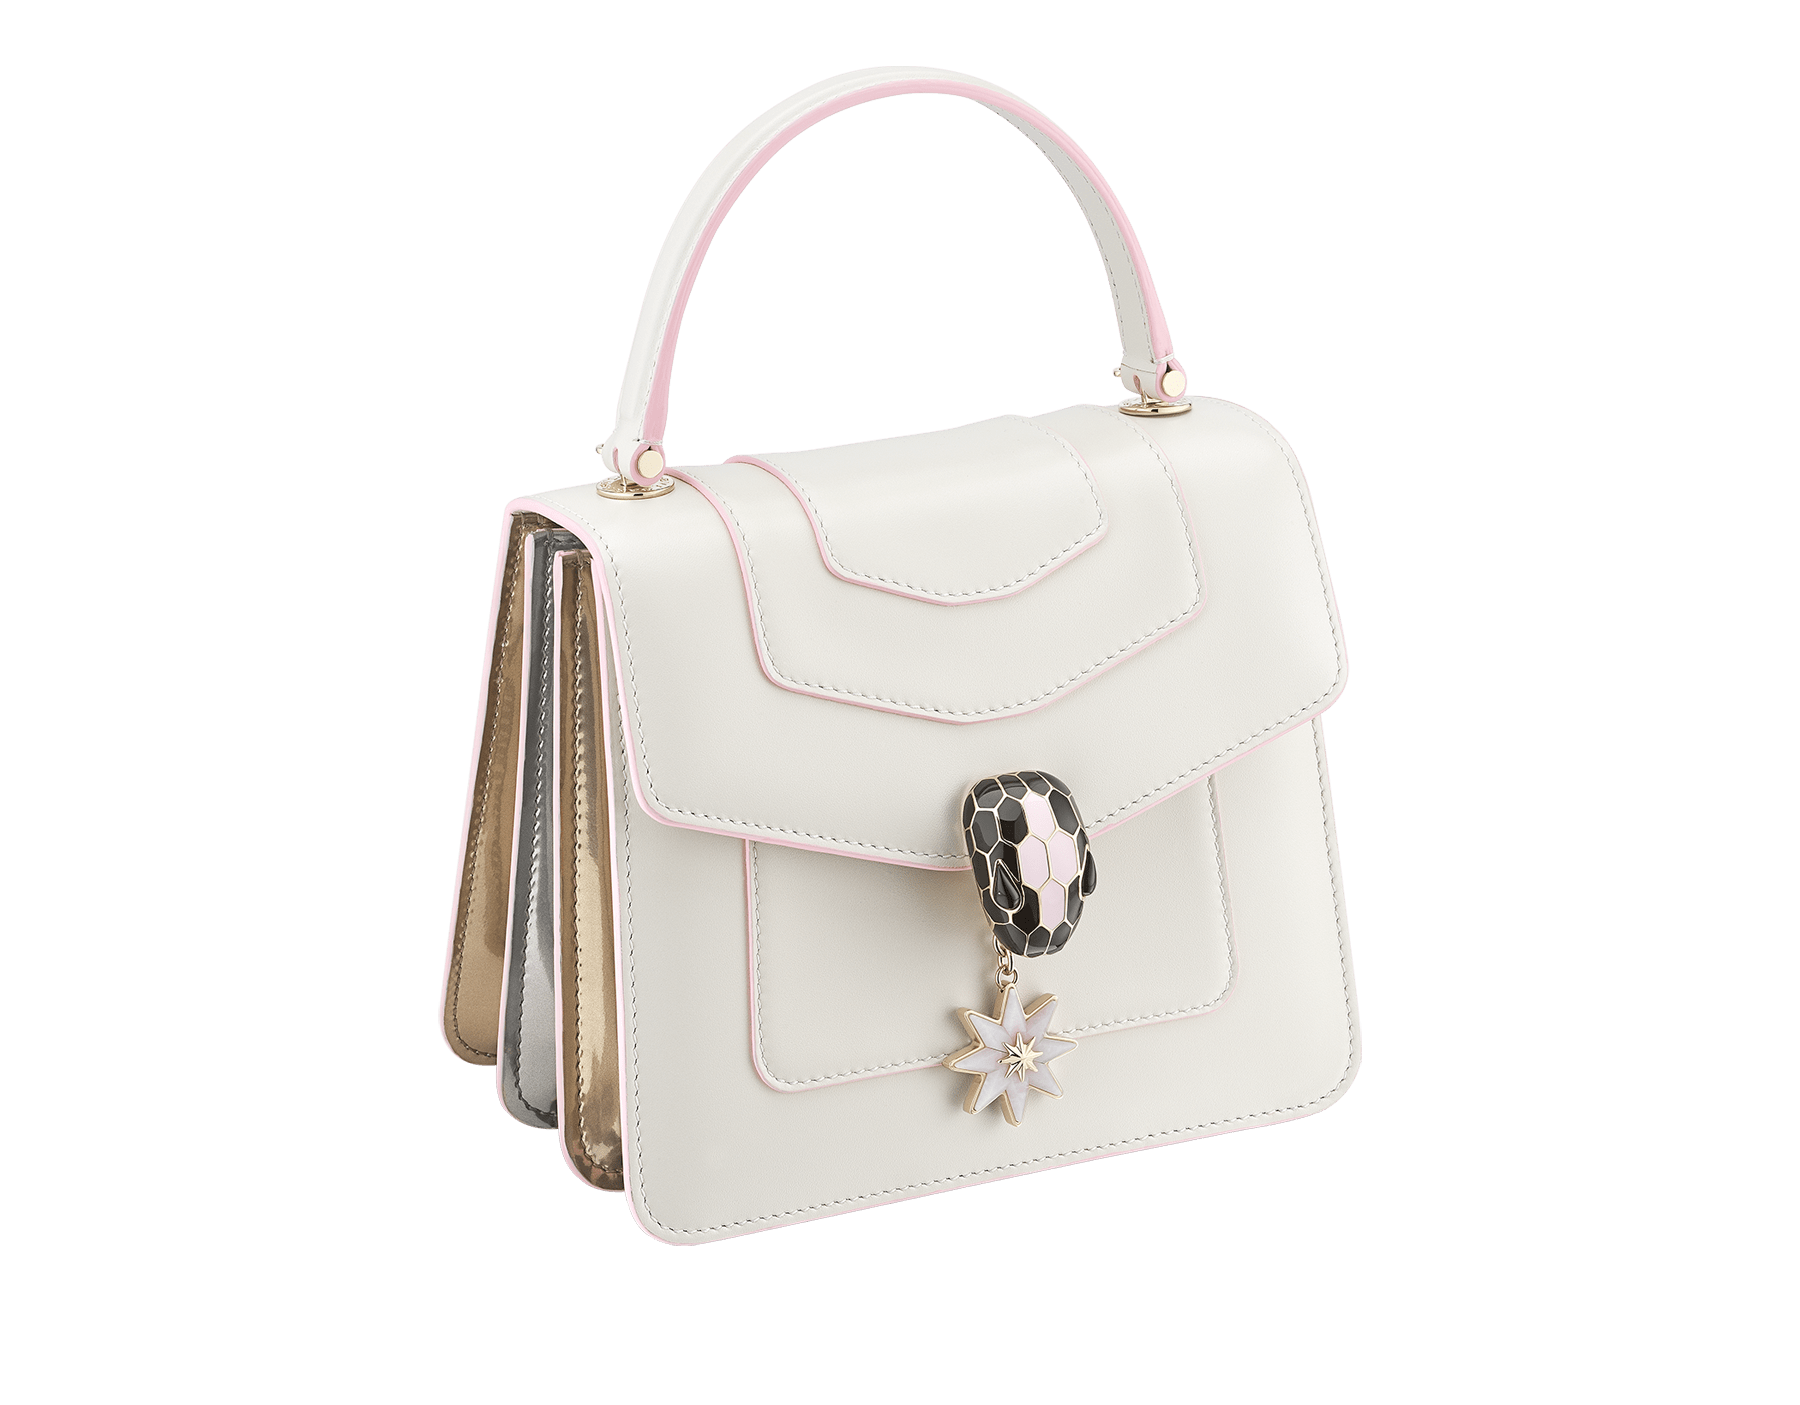 Serpenti Forever Holiday Season crossbody bag in white agate calf leather, bronze and silver brushed metallic calf leather. Snakehead closure in light gold plated brass embellished with black and sakura pink enamel, black onyx eyes and a pink opal eight-pointed star charm. 289372 image 2